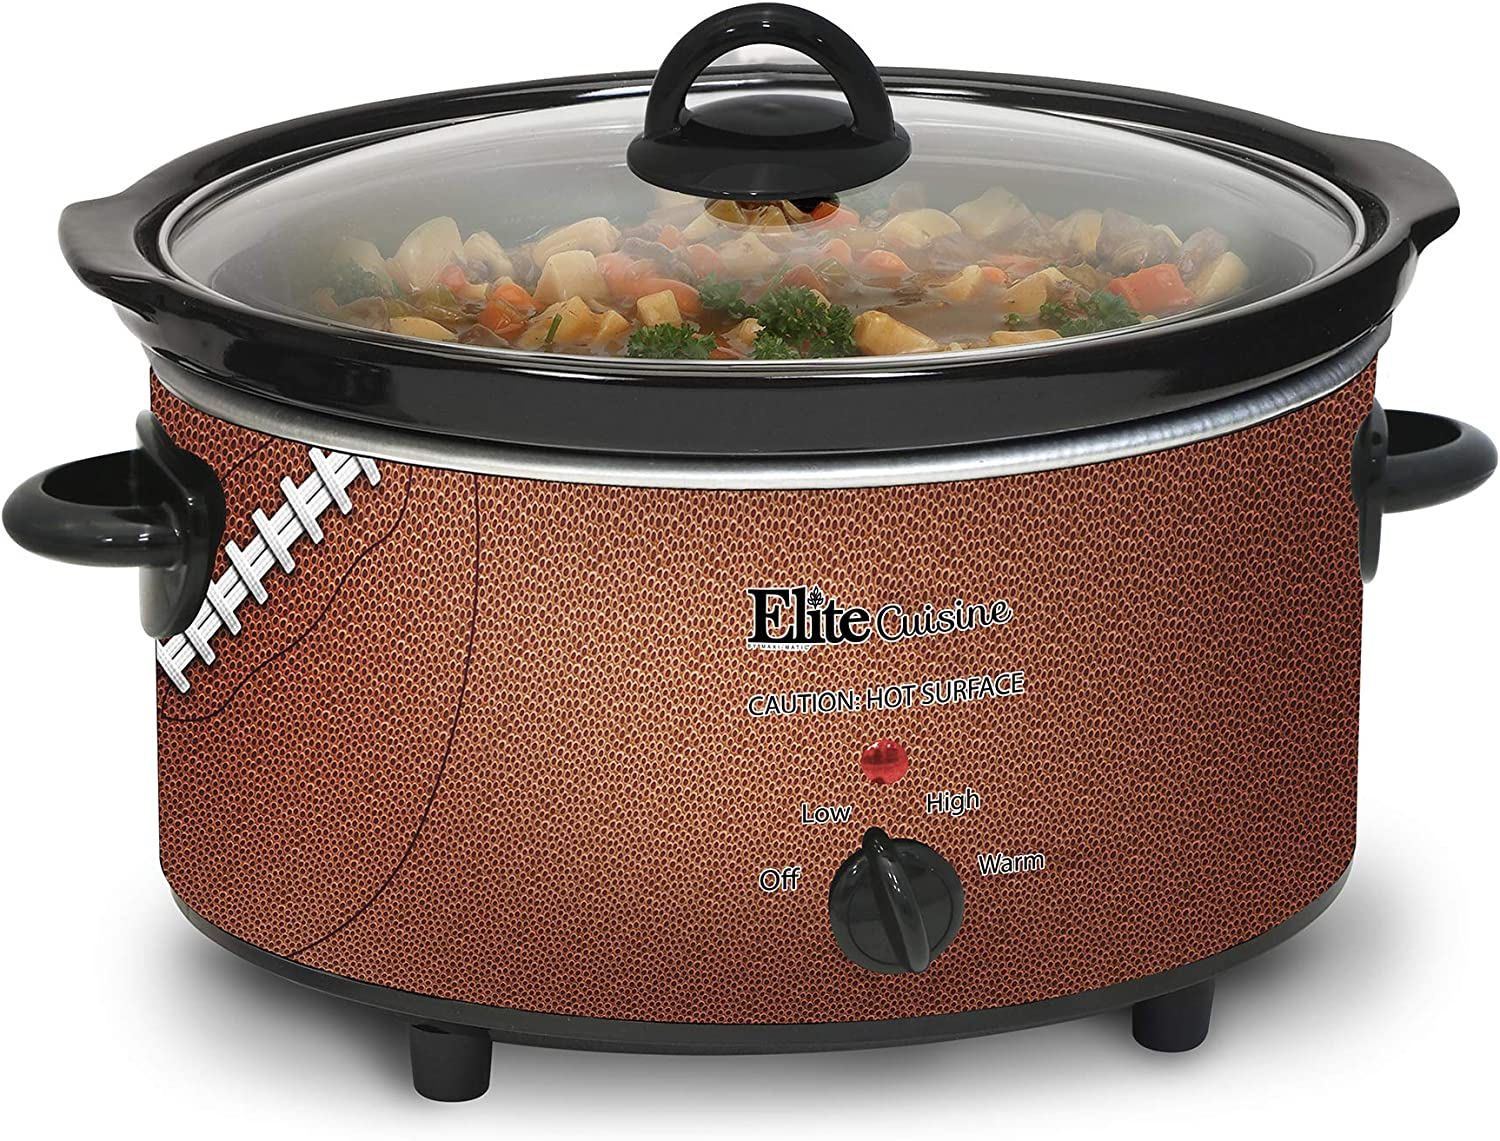 Elite Cuisine MST-500FB Football Electric Slow Cooker, Adjustable Temp Entrees, Sauces, Stews & Dips, Dishwasher-Safe Glass Lid & Ceramic Pot, 5 quart Capacity,